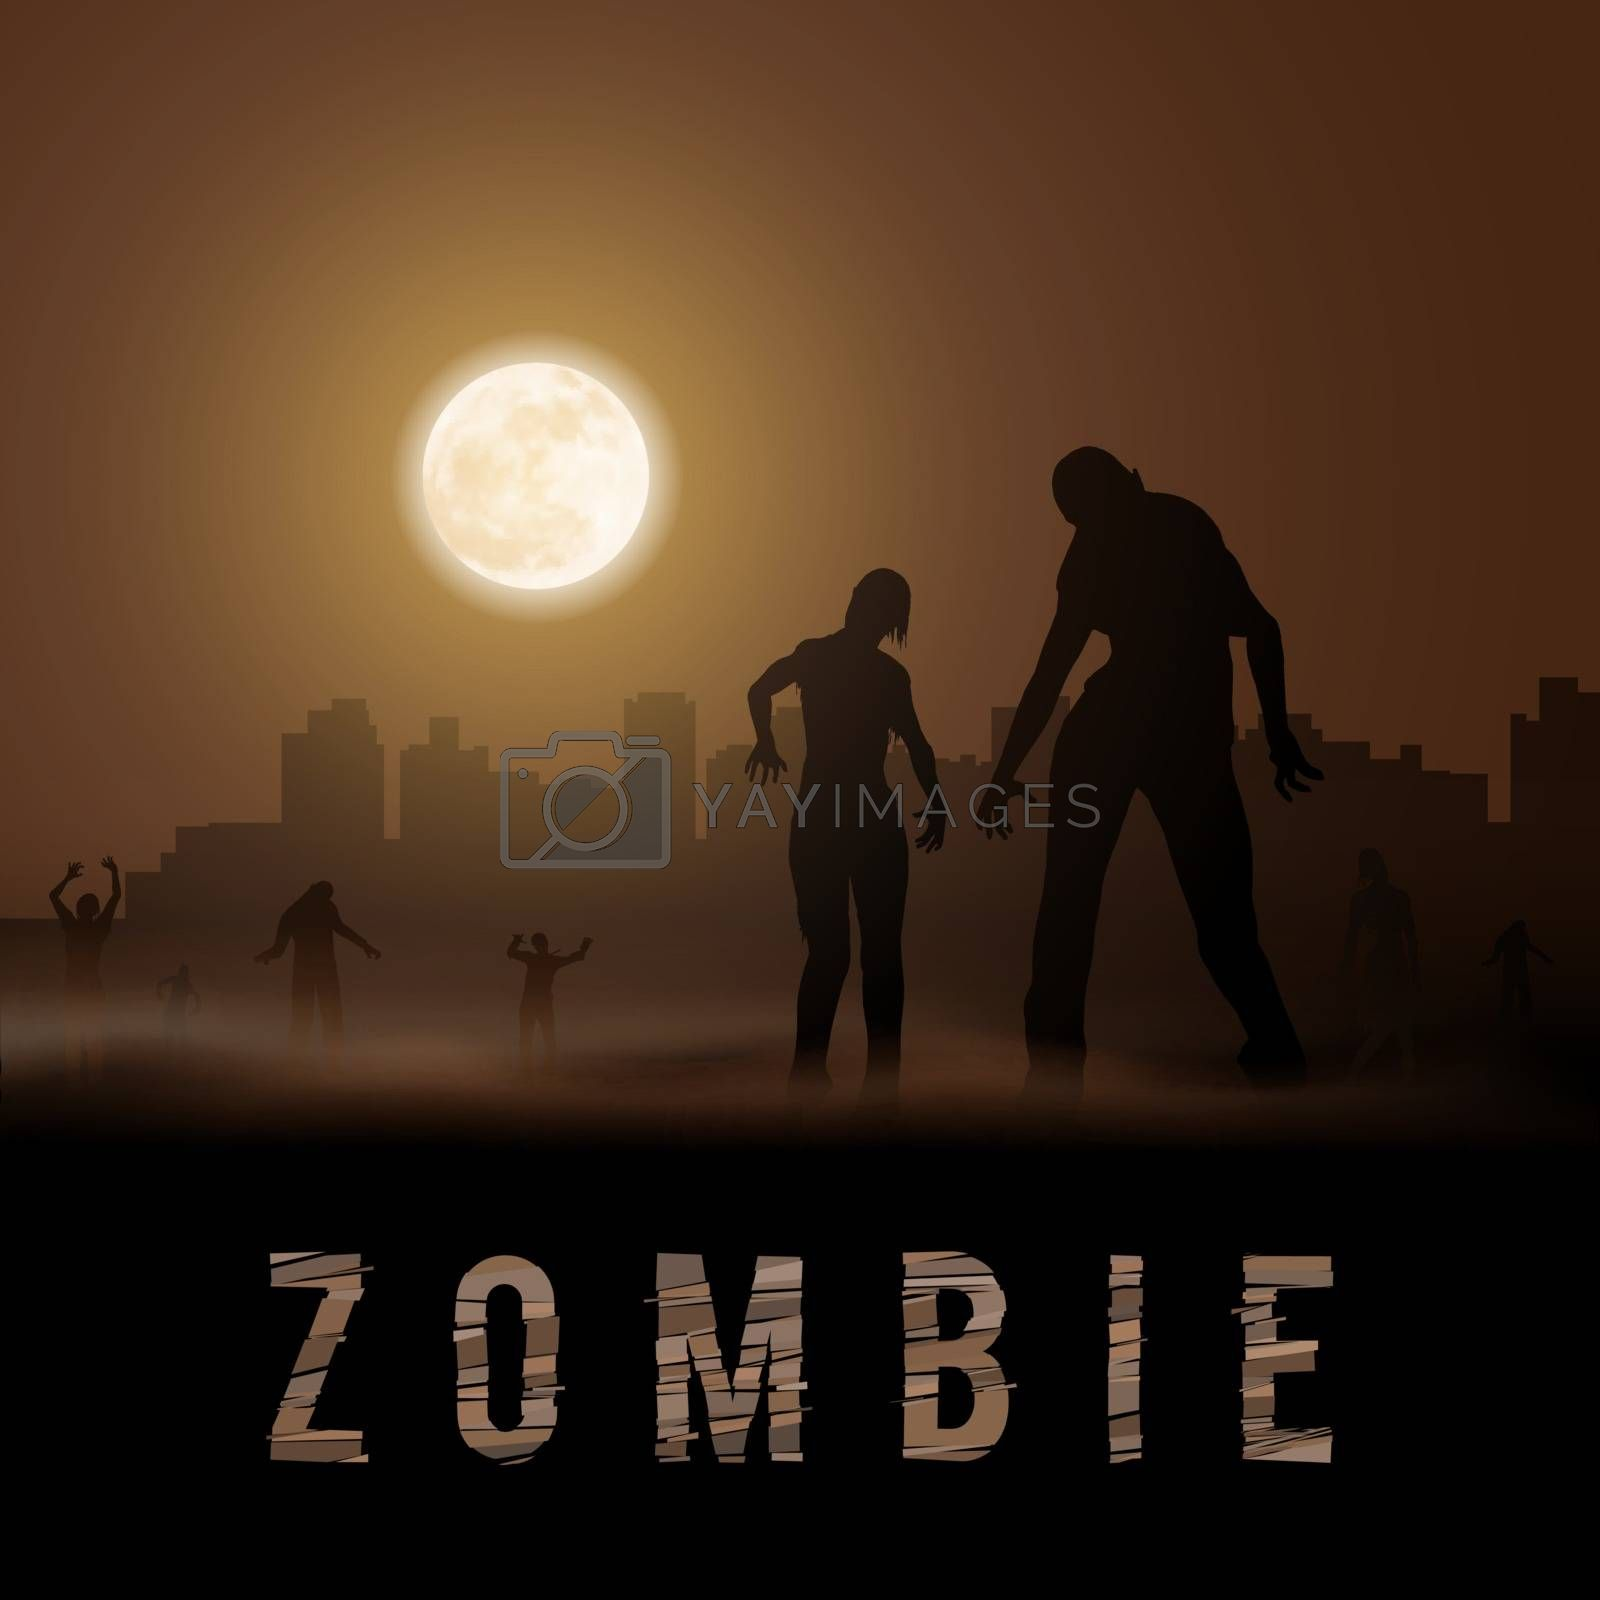 Zombie Walking out From Abandoned City. Silhouettes Illustration for Halloween Poster